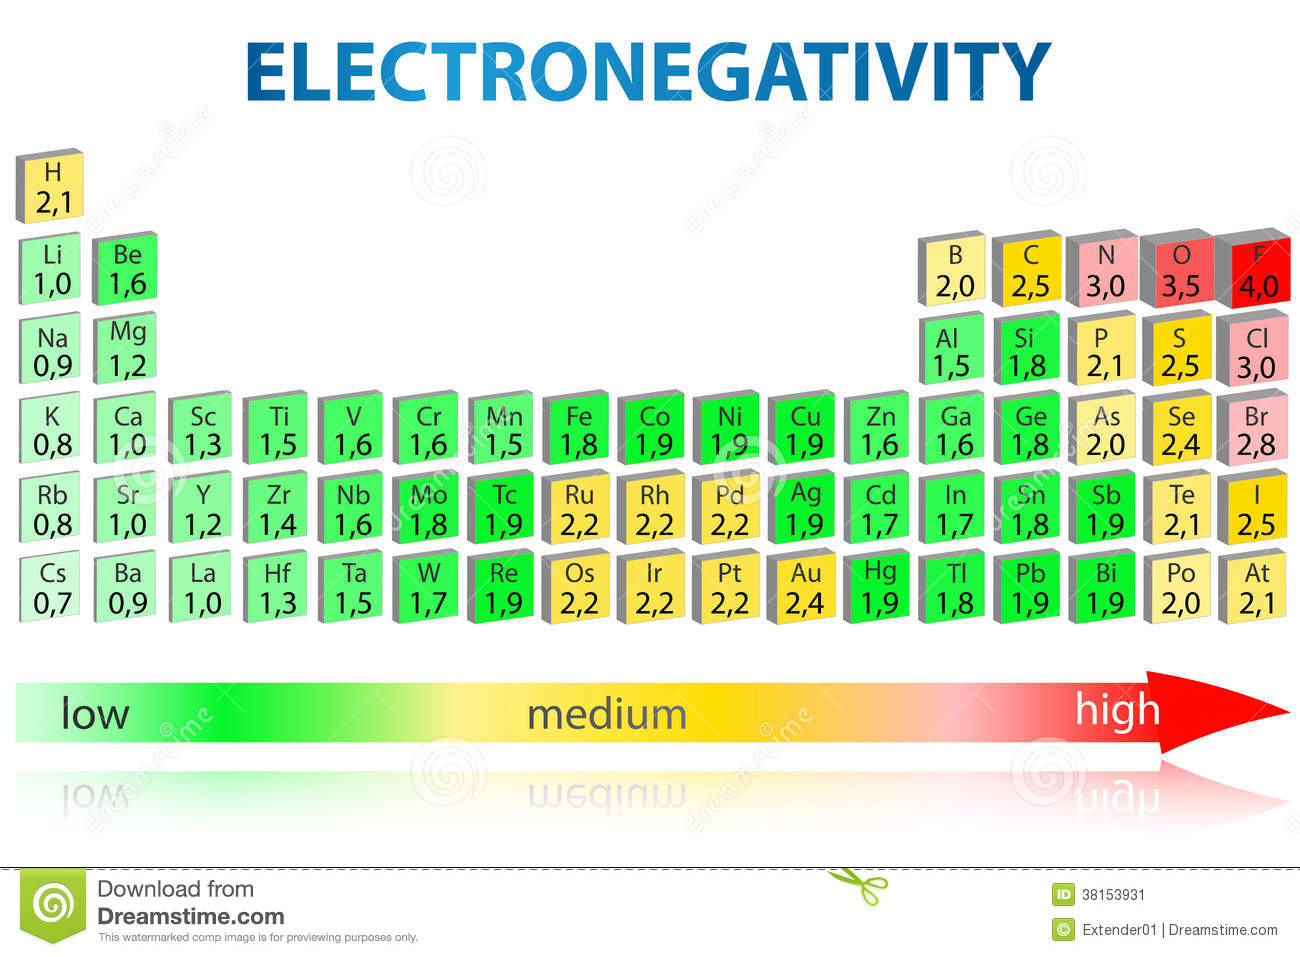 electronegativity periodic table illustration 38153931 megapixl - Periodic Table Electronegativity Trend